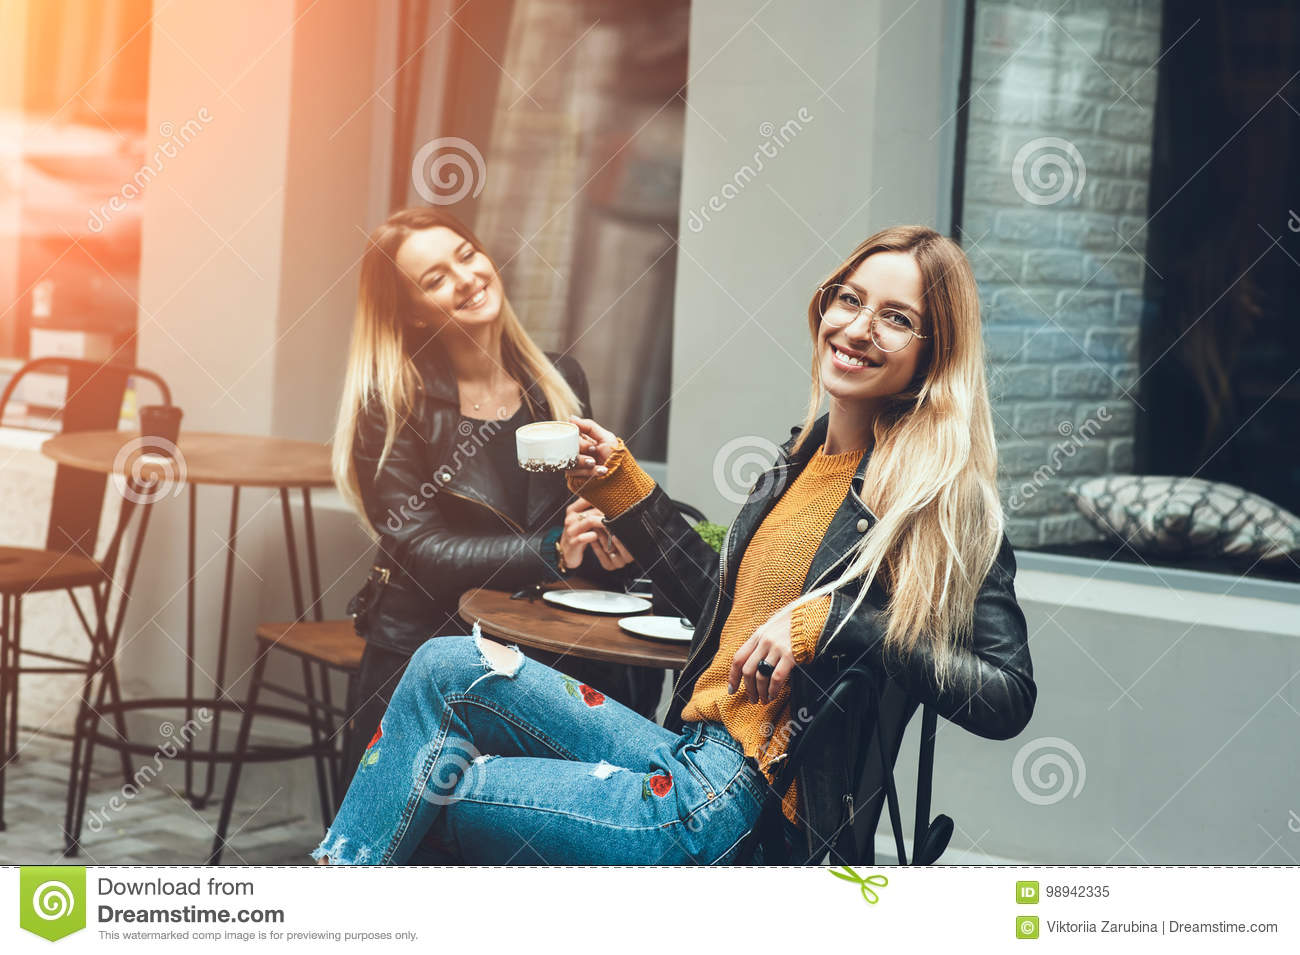 Two beautiful young women in fashion clothes having rest talking and drinking coffee in restaurant outdoor.